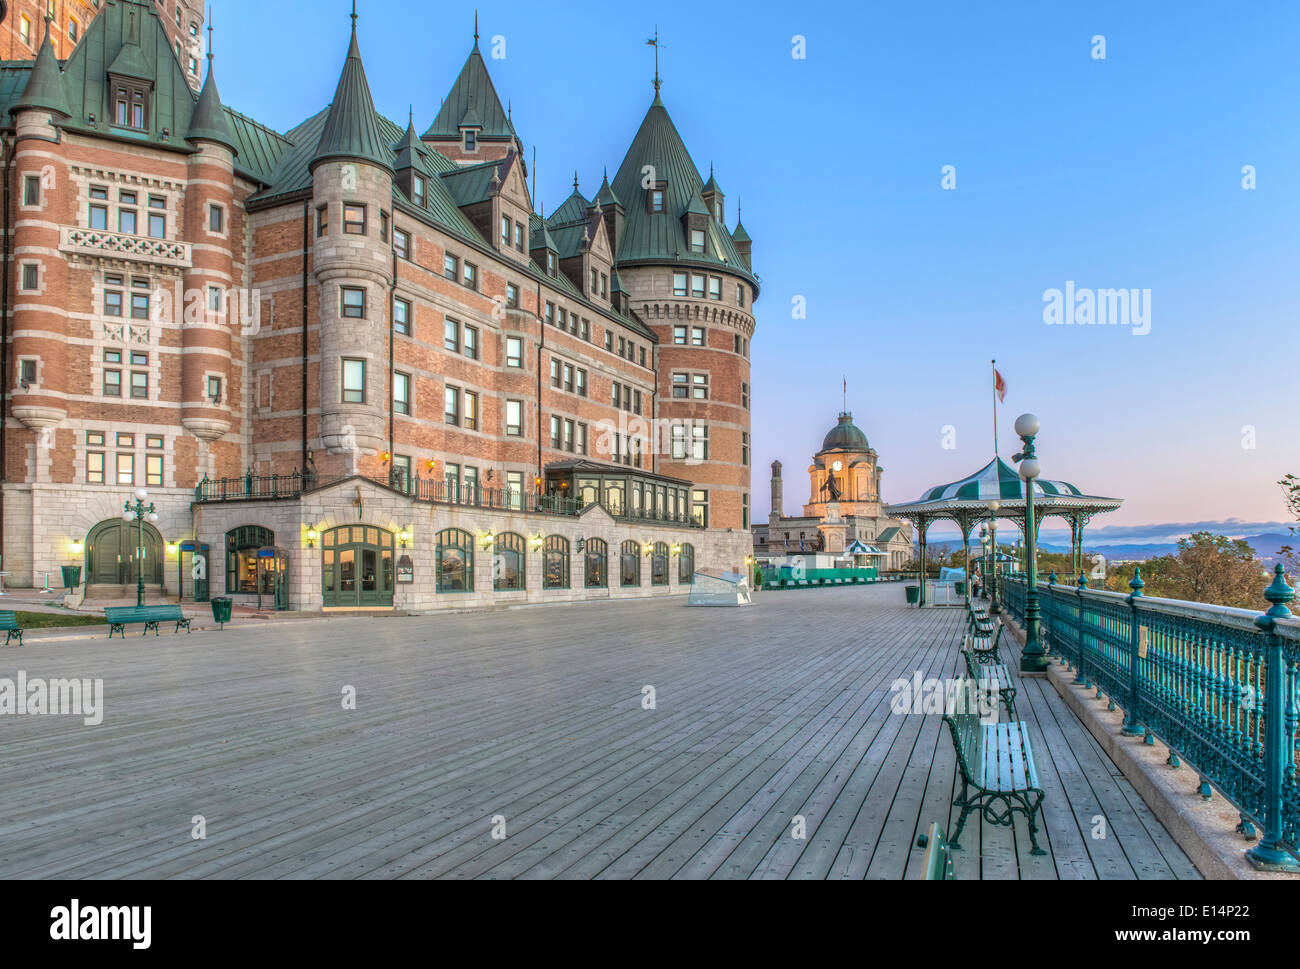 Chateau Frontecac at dawn, Quebec, Canada - Stock Image